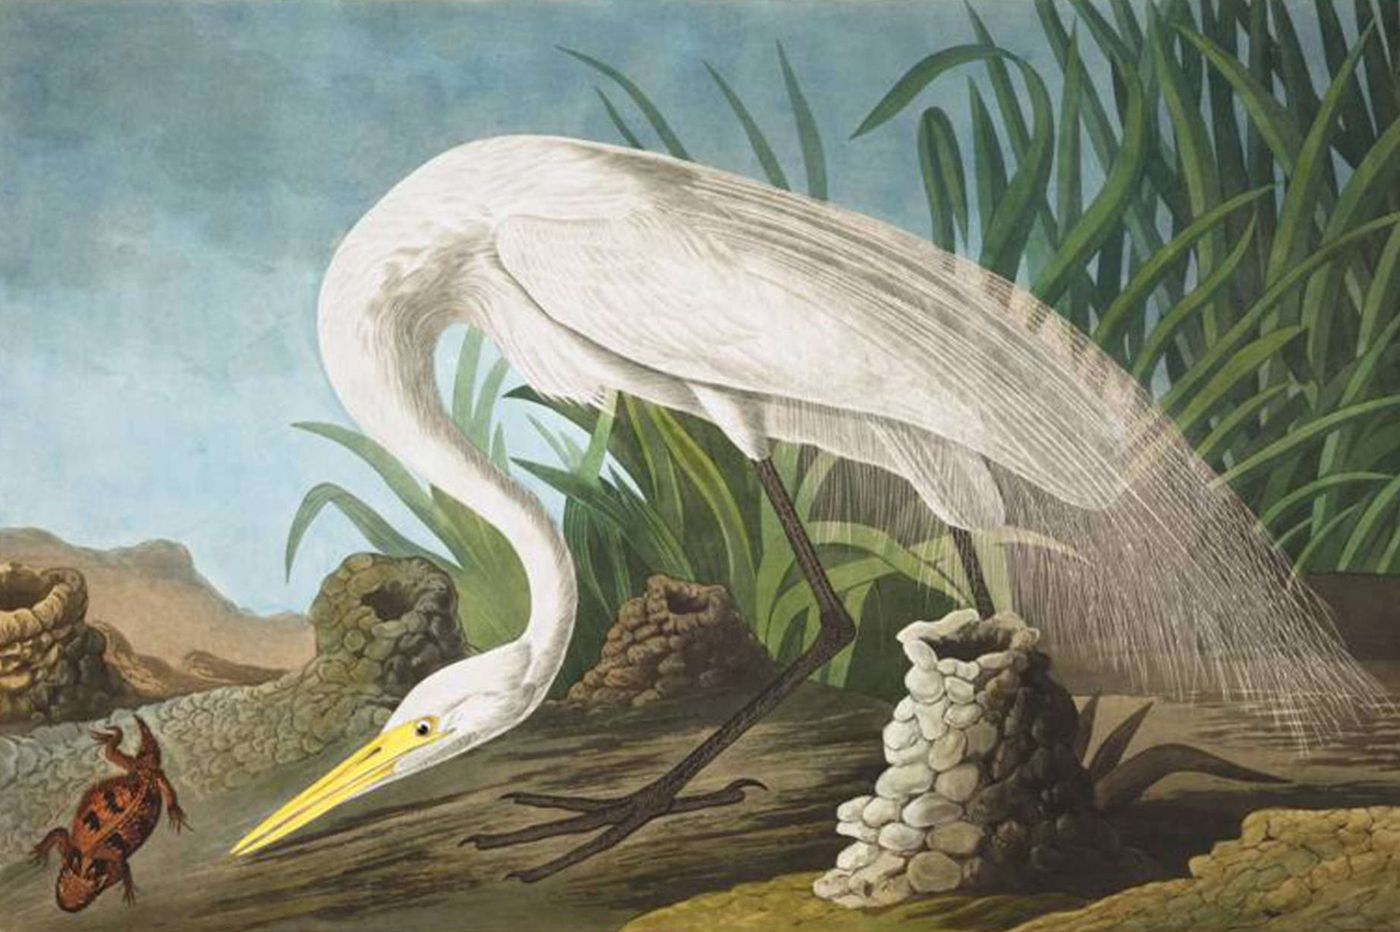 Gallery shows: Audubon and contemporary art; photography books